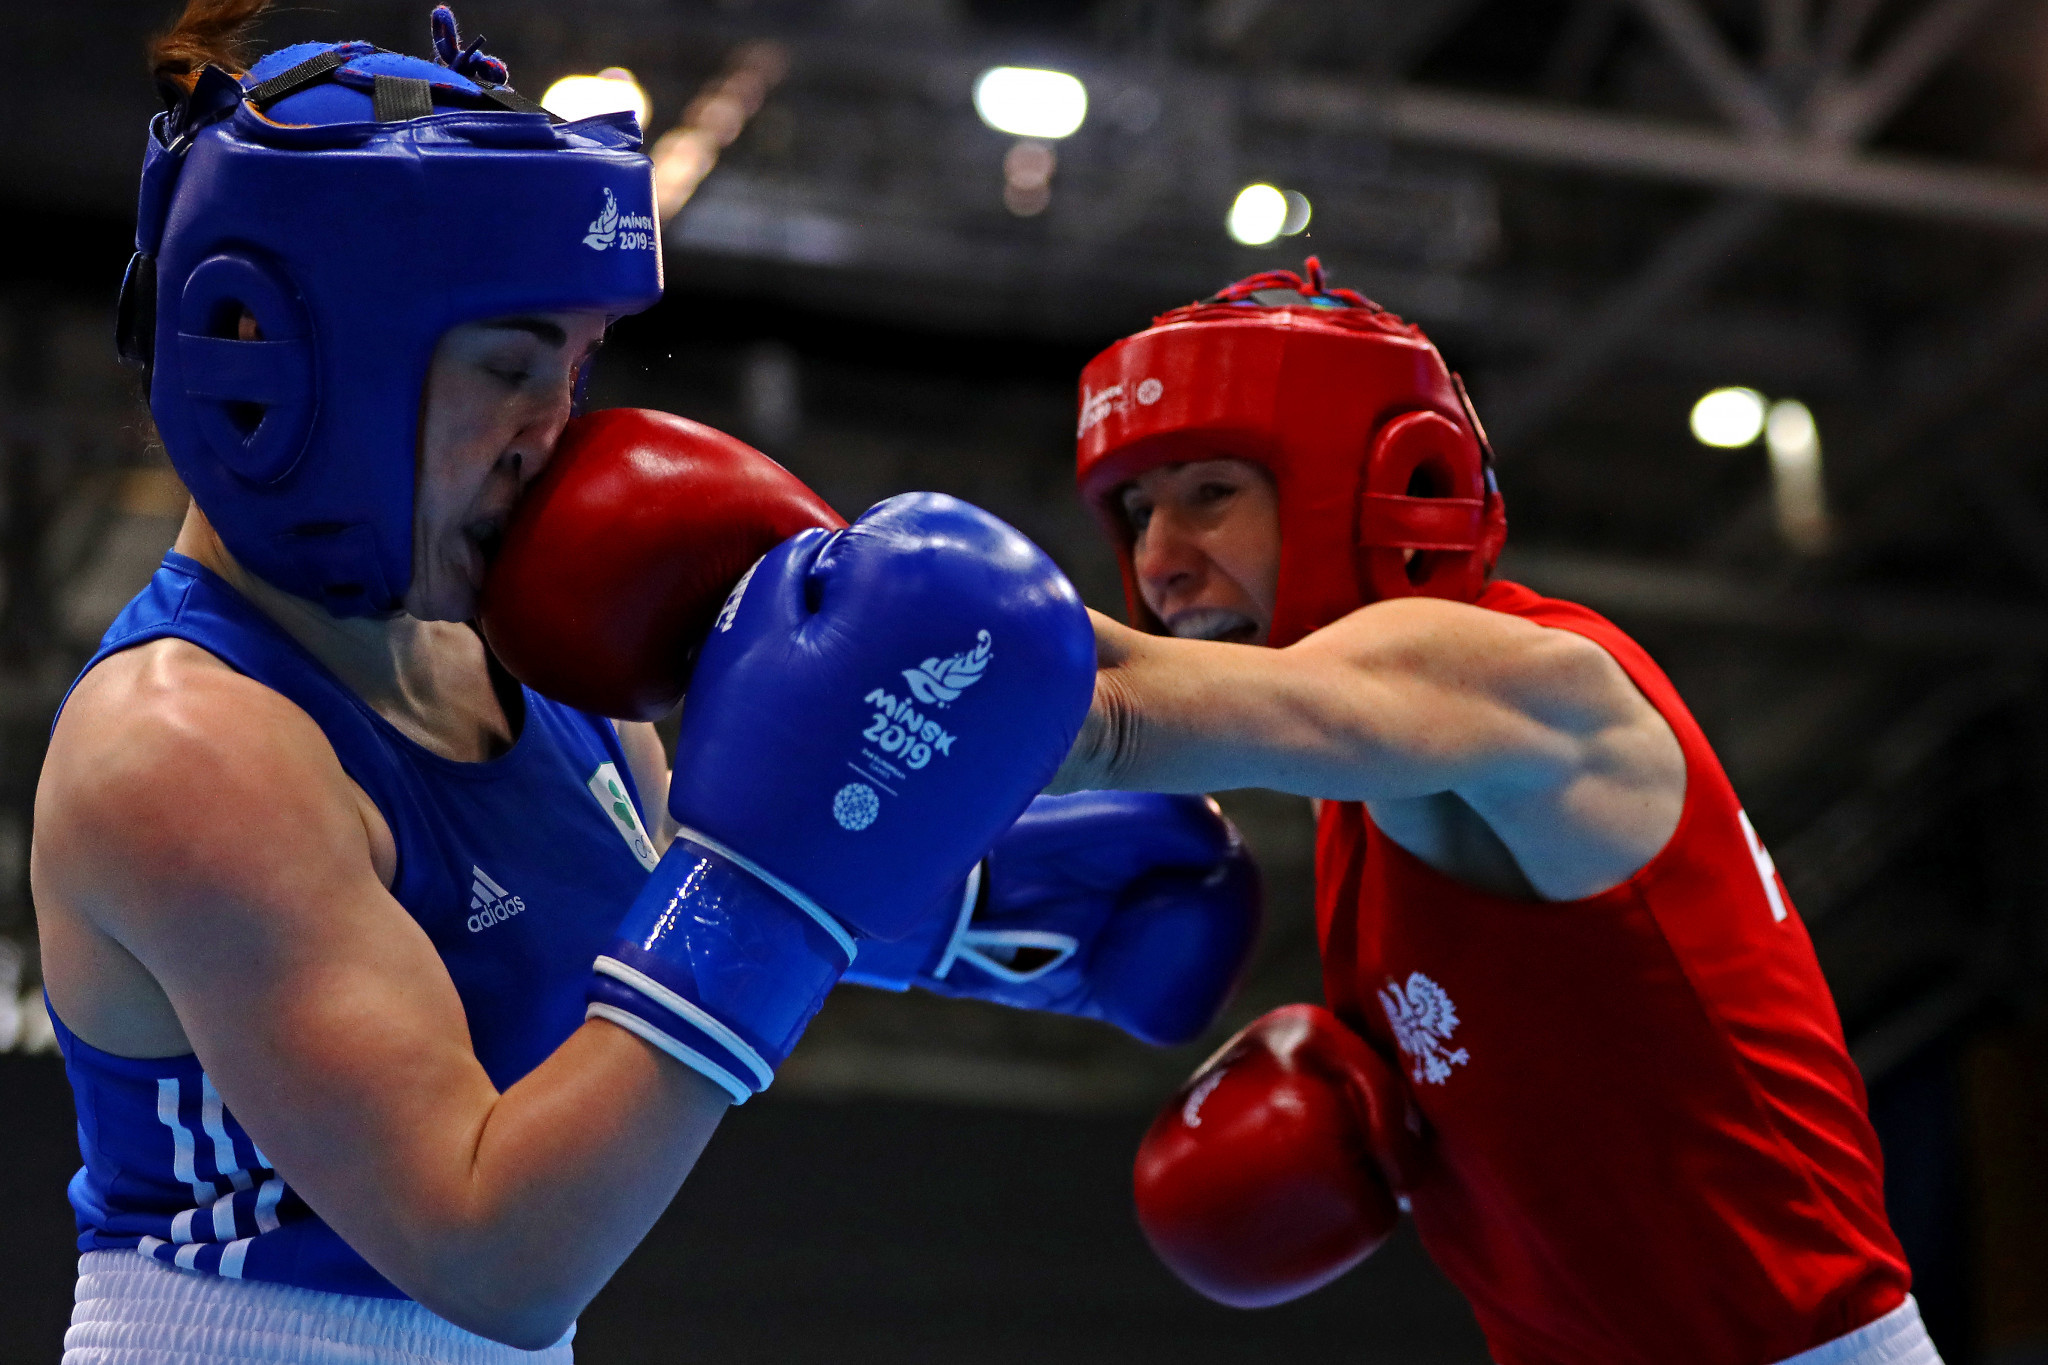 Karolina Koszewska of Poland, in red, is one win away from Tokyo 2020 after winning her semi-final in the women's welterweight category box-offs ©Getty Images